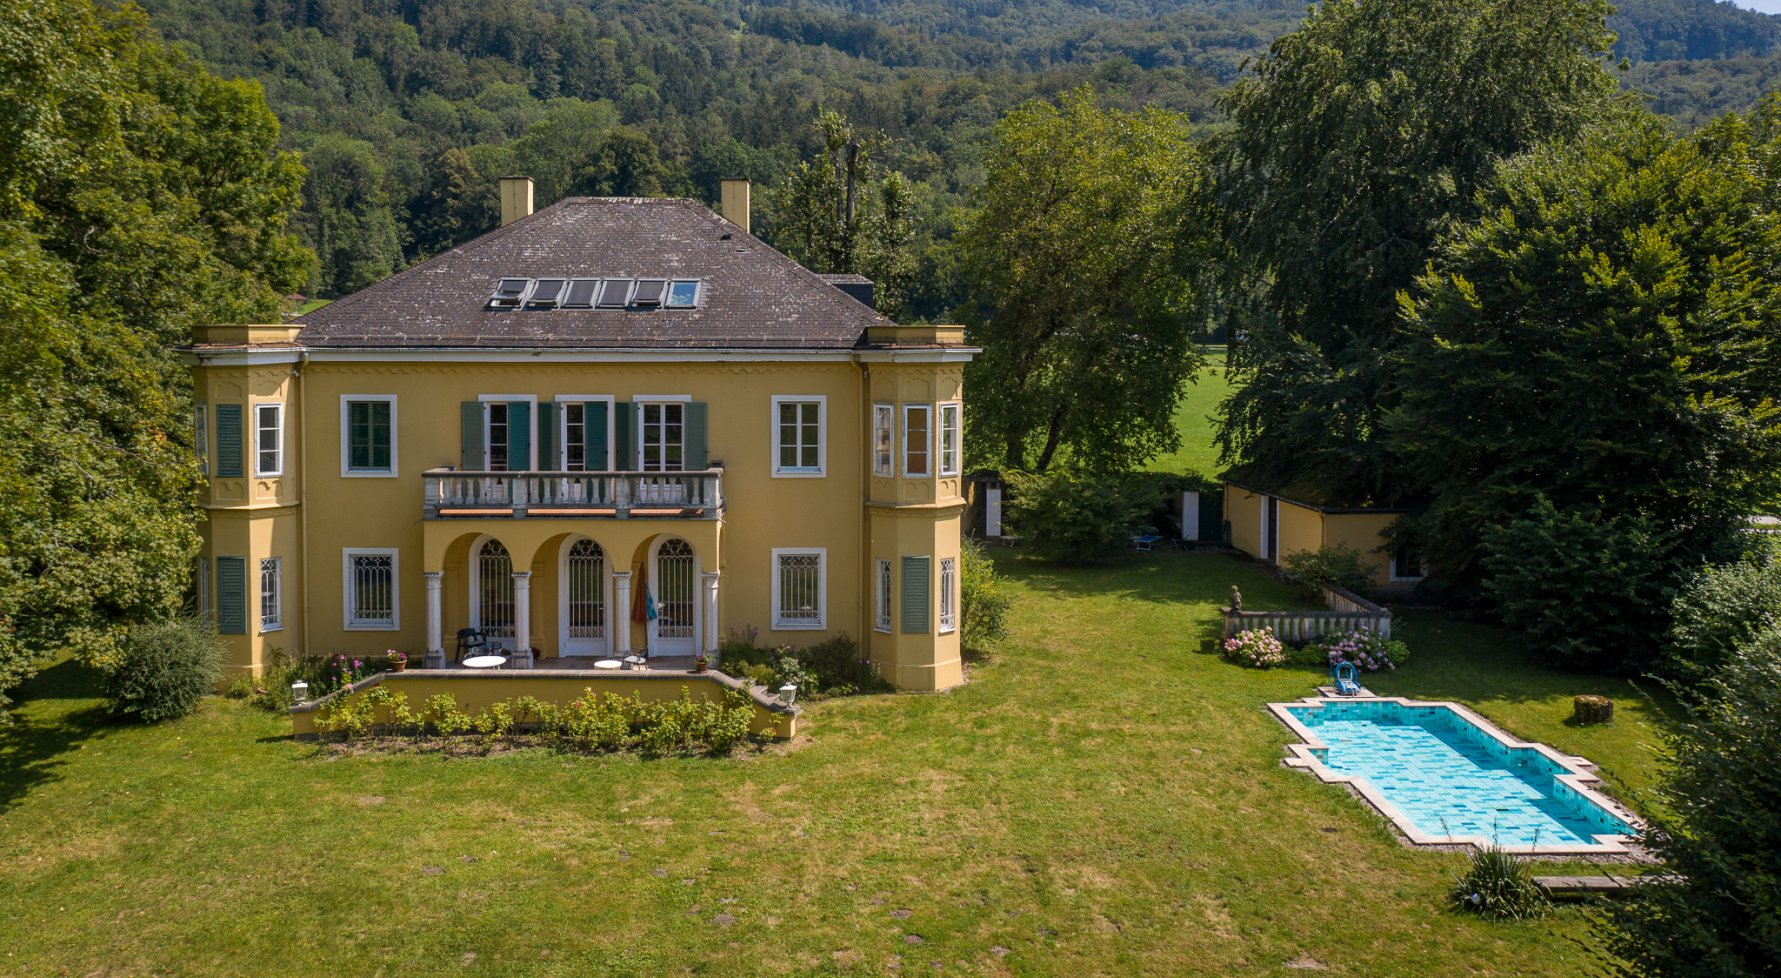 Property in 5020 Salzburg - Premium location Aigen: Villa with pool and history! Stately architecture in a noble location - picture 1